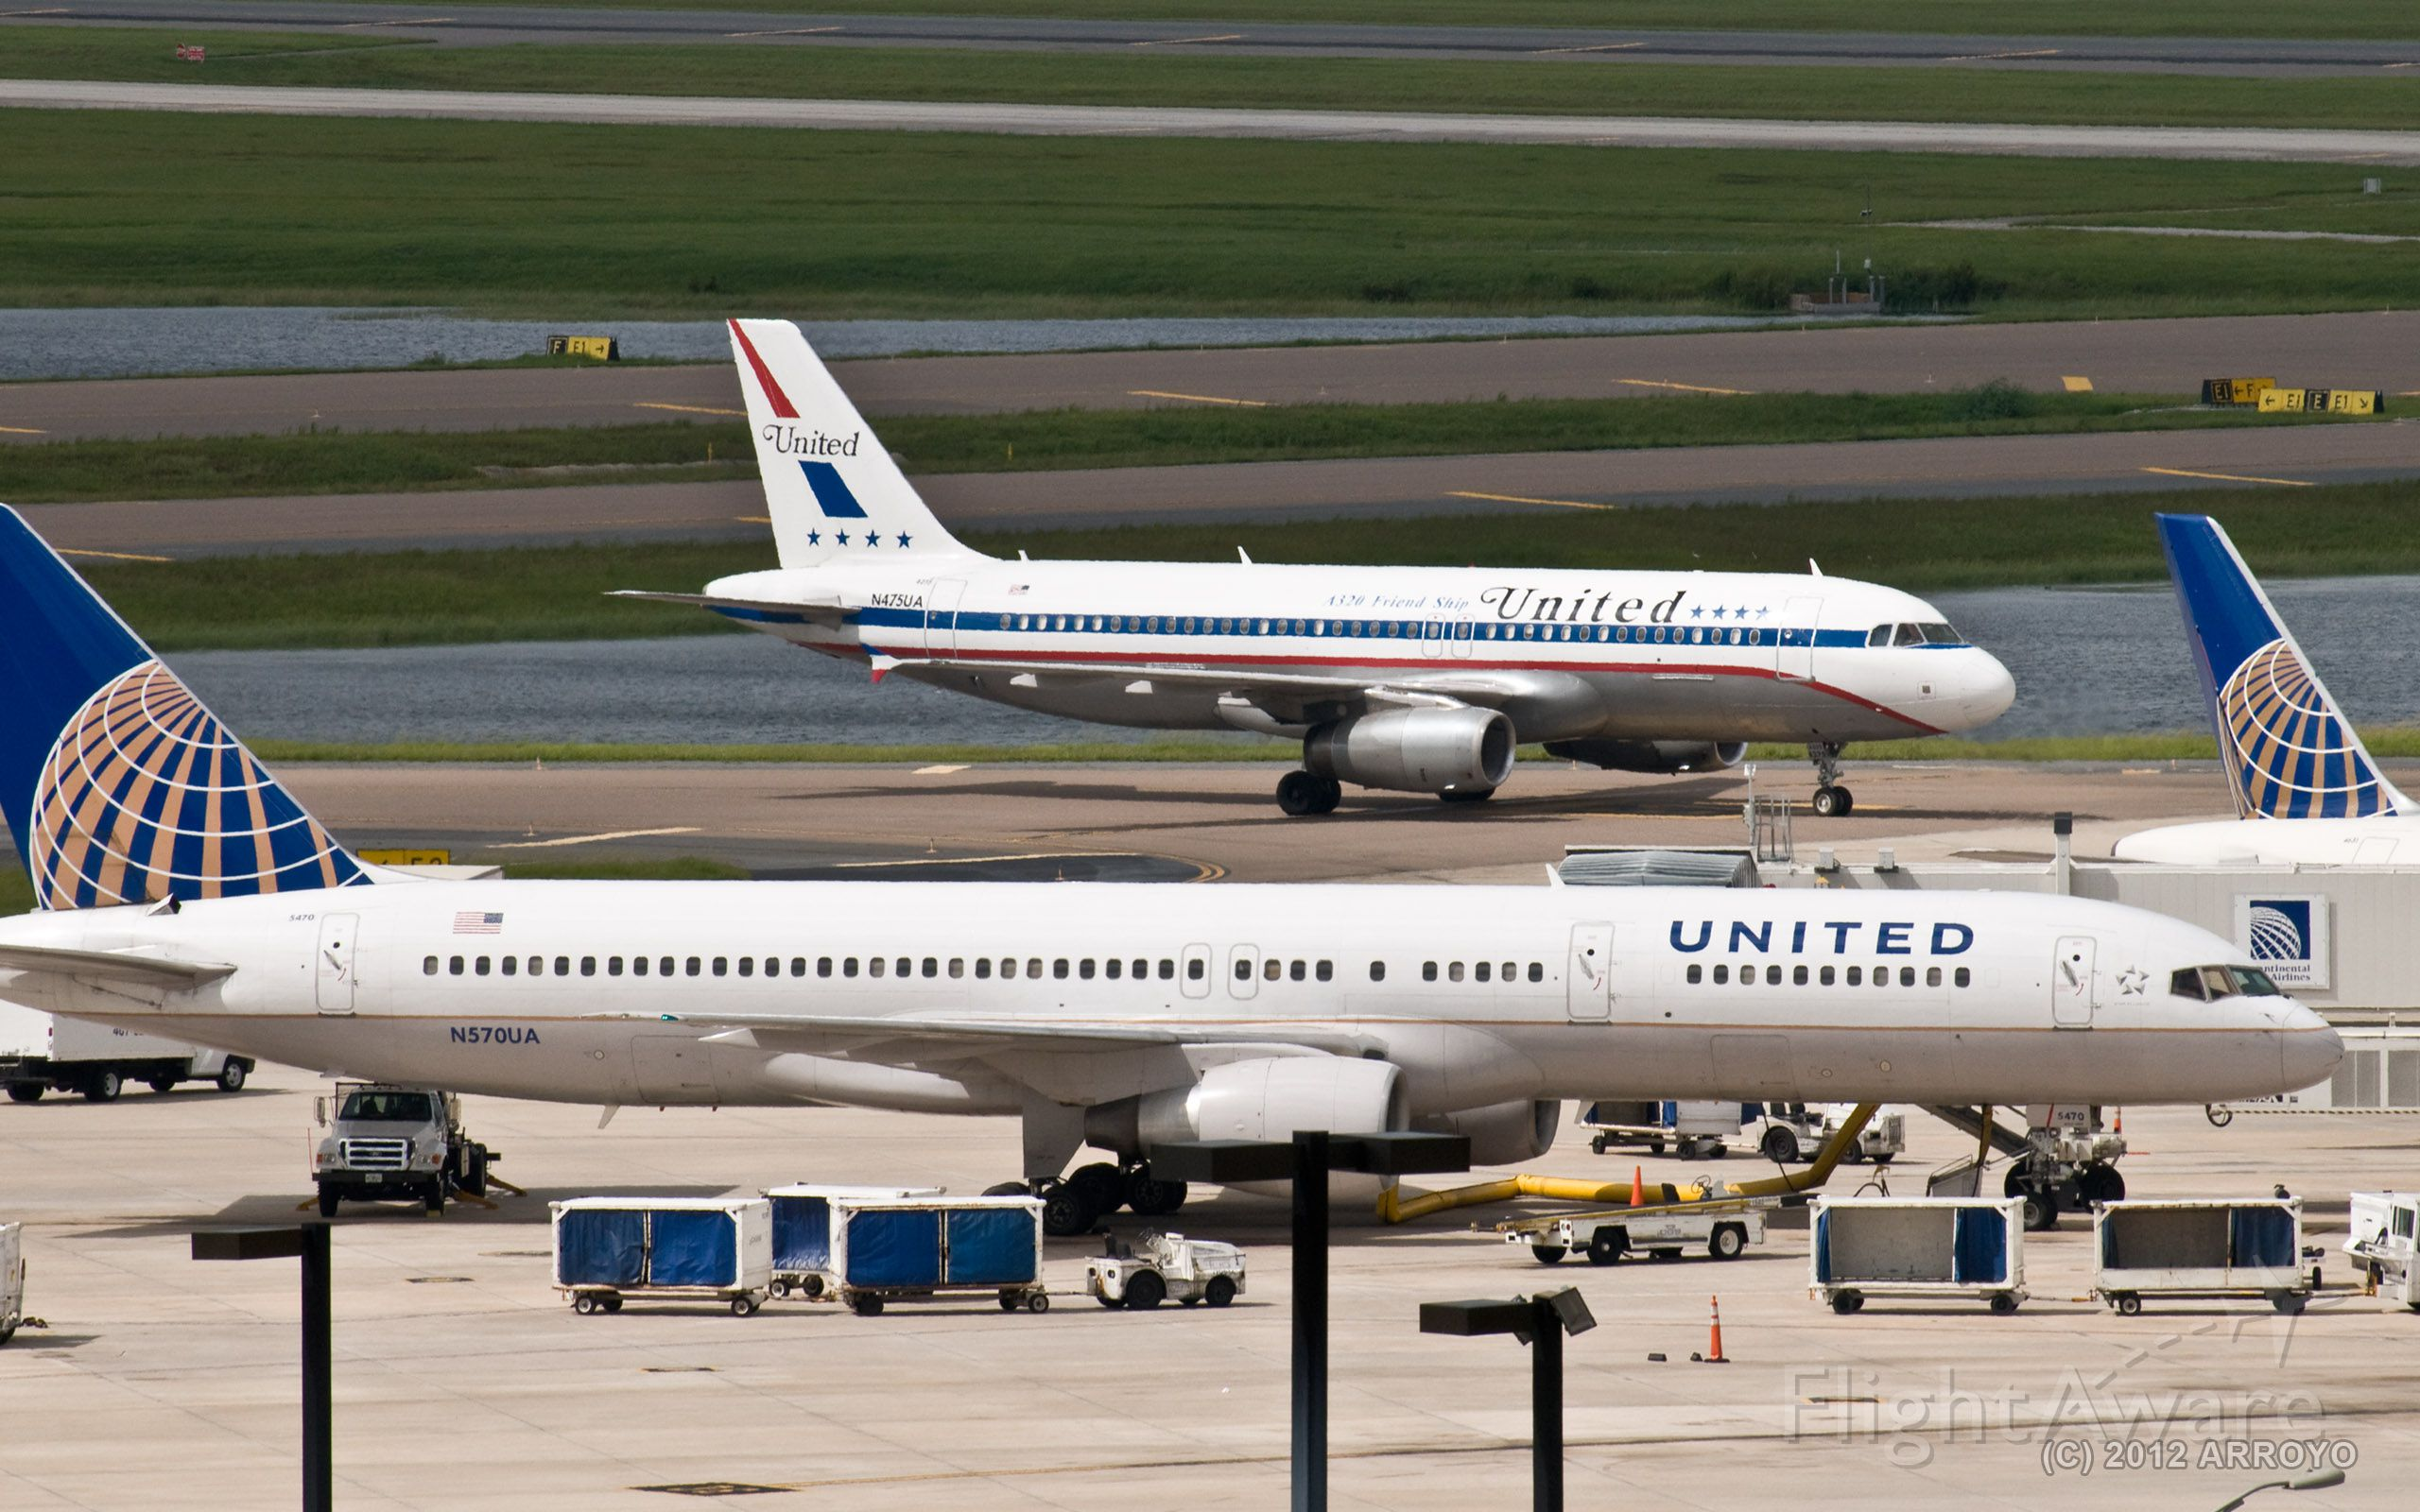 Boeing 757-200 (N570UA) - United Airlines Aribus A320 (Friendship One) special livery plane (N475UA) passes behind a Boeing 757-200 (N570UA) parked at gate 39 at Orlando International Airport (MCO).  United currently operates 10 gates in Terminal B Airside 3 at MCO.